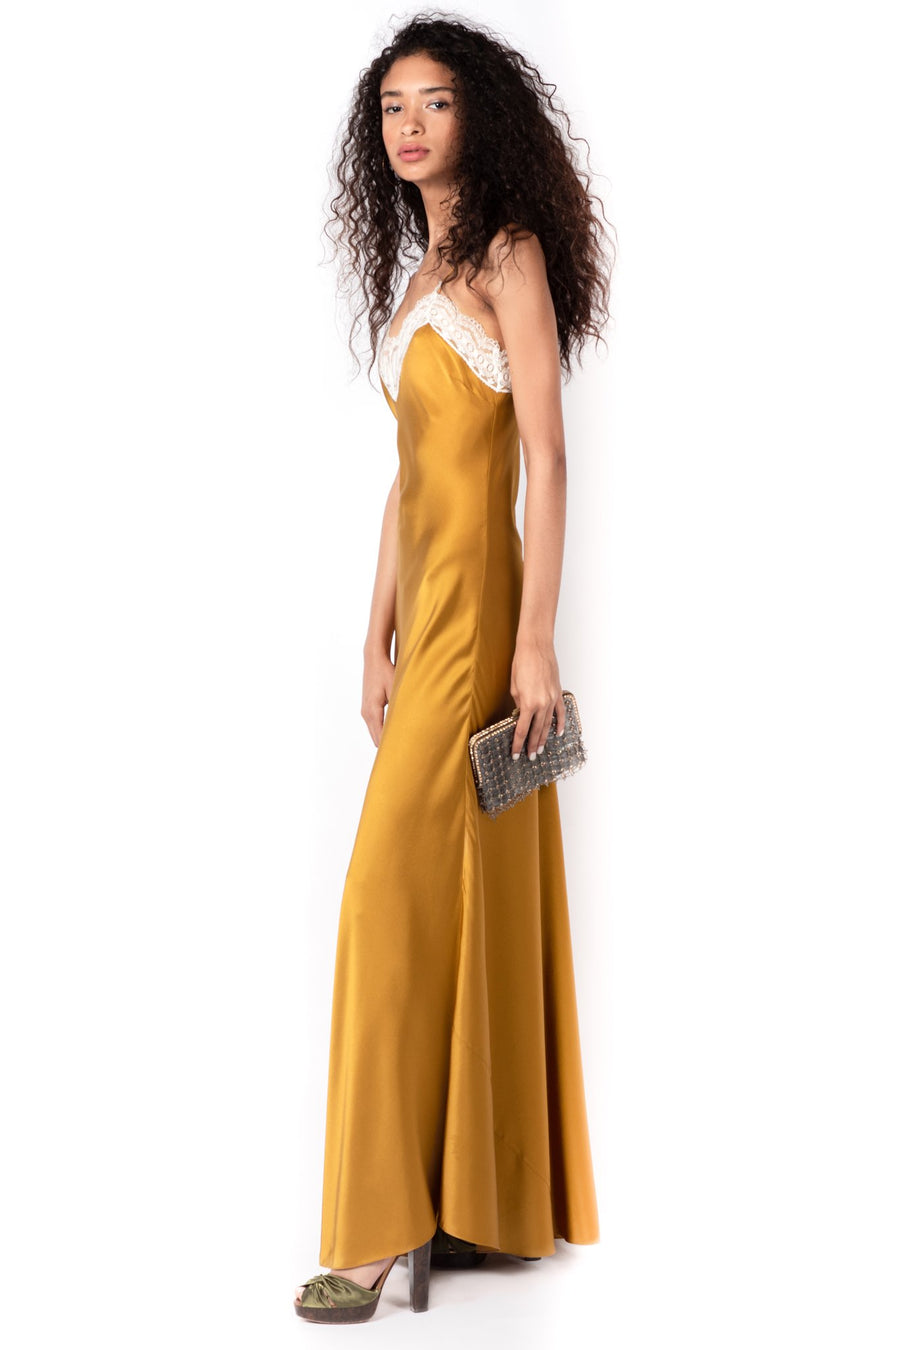 This is a photo of a woman wearing a floor length, gold colored, silk charmeuse slip dress. The dress has a delicate, ivory trim around the neckline and a high slit on the left side.